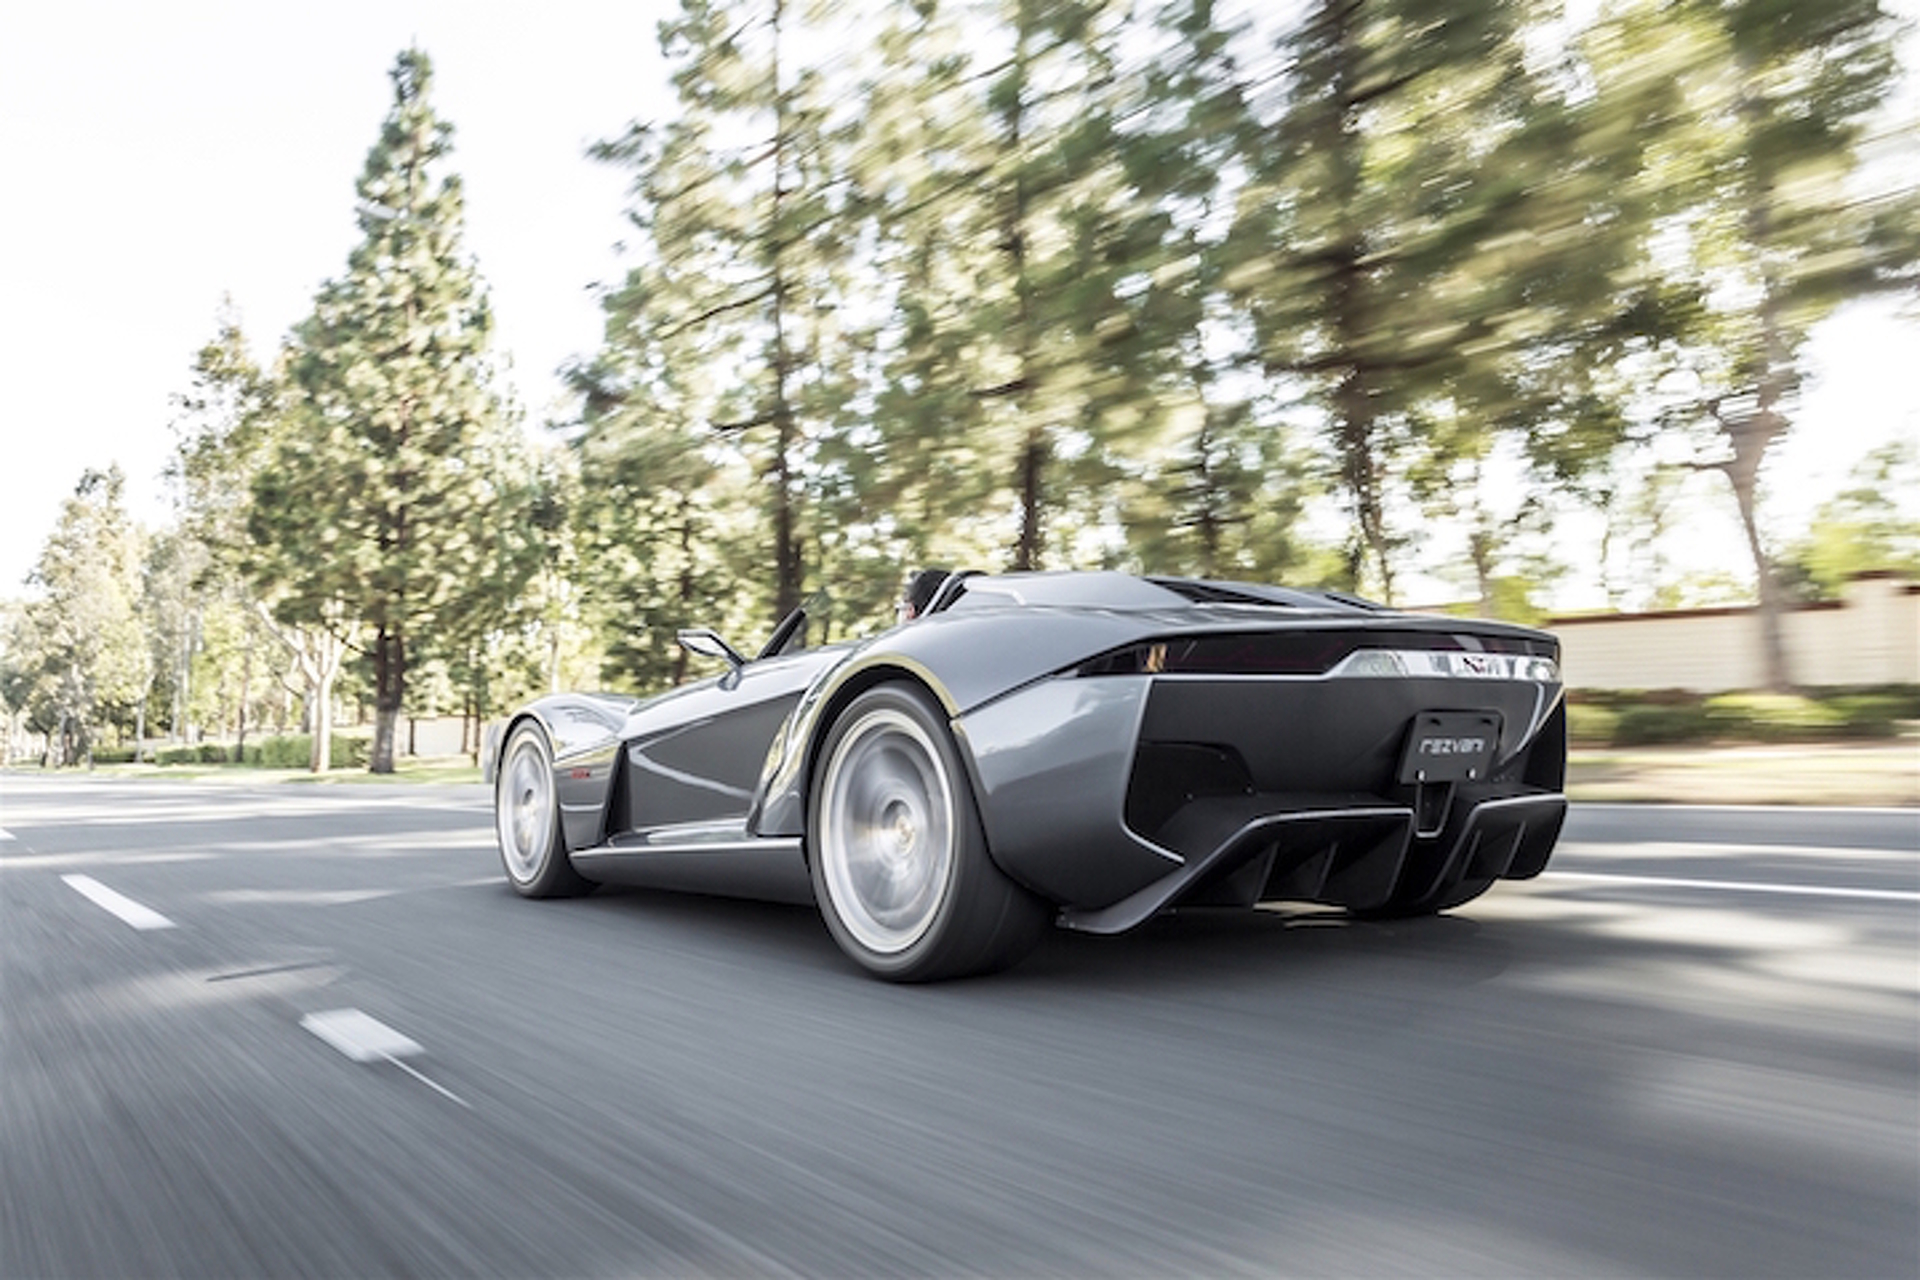 500HP Rezvani Beast Supercar Defies the Odds, Takes to the Streets